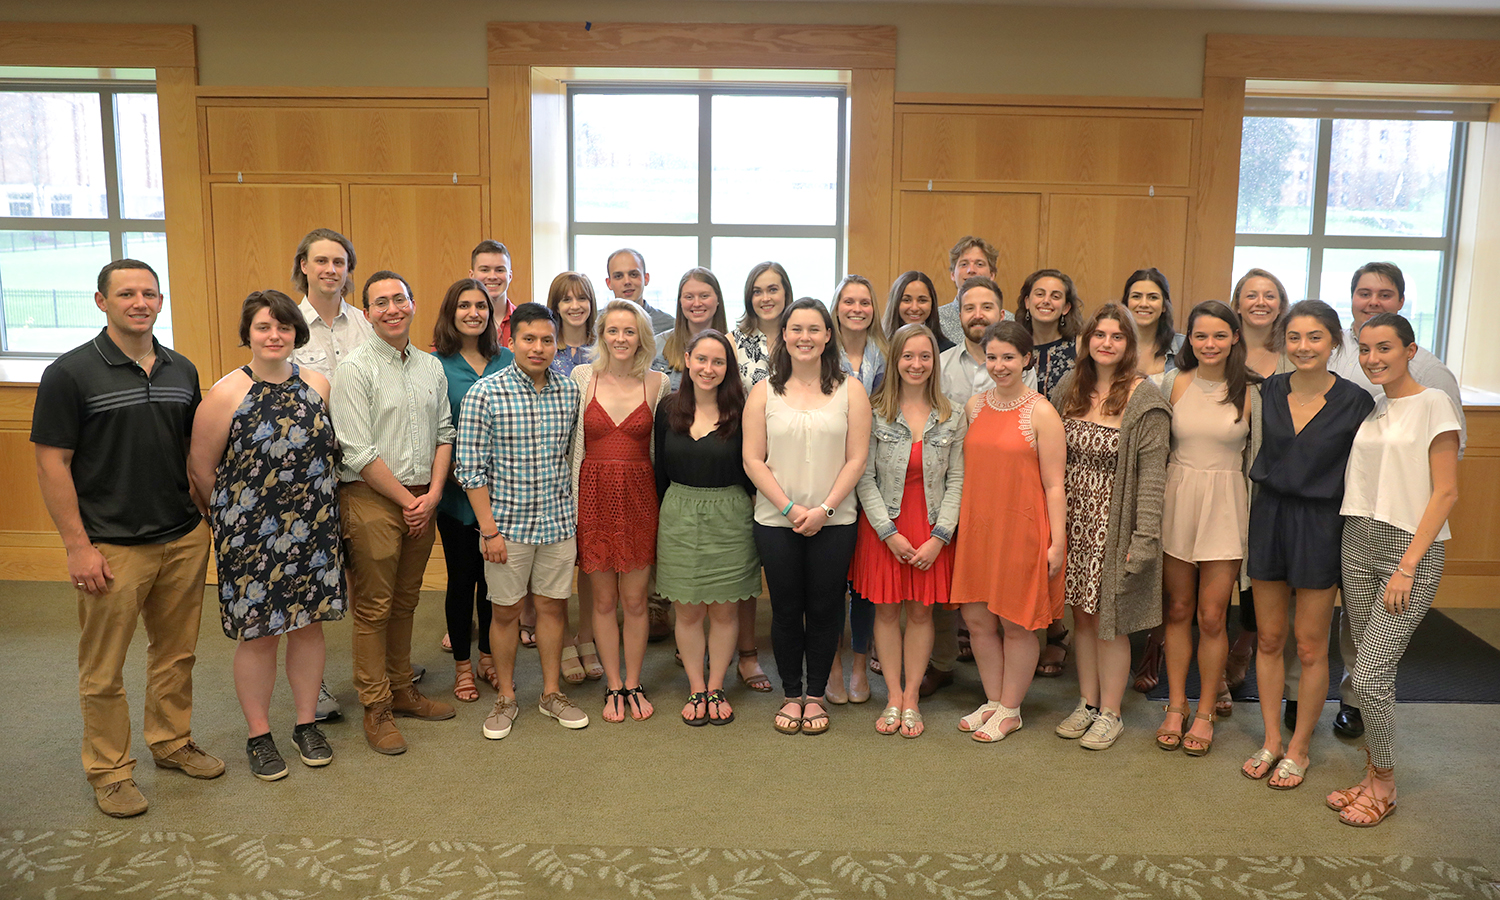 Students and faculty who participated in this year's Honors program gather for a photo in the Vandervort Room.